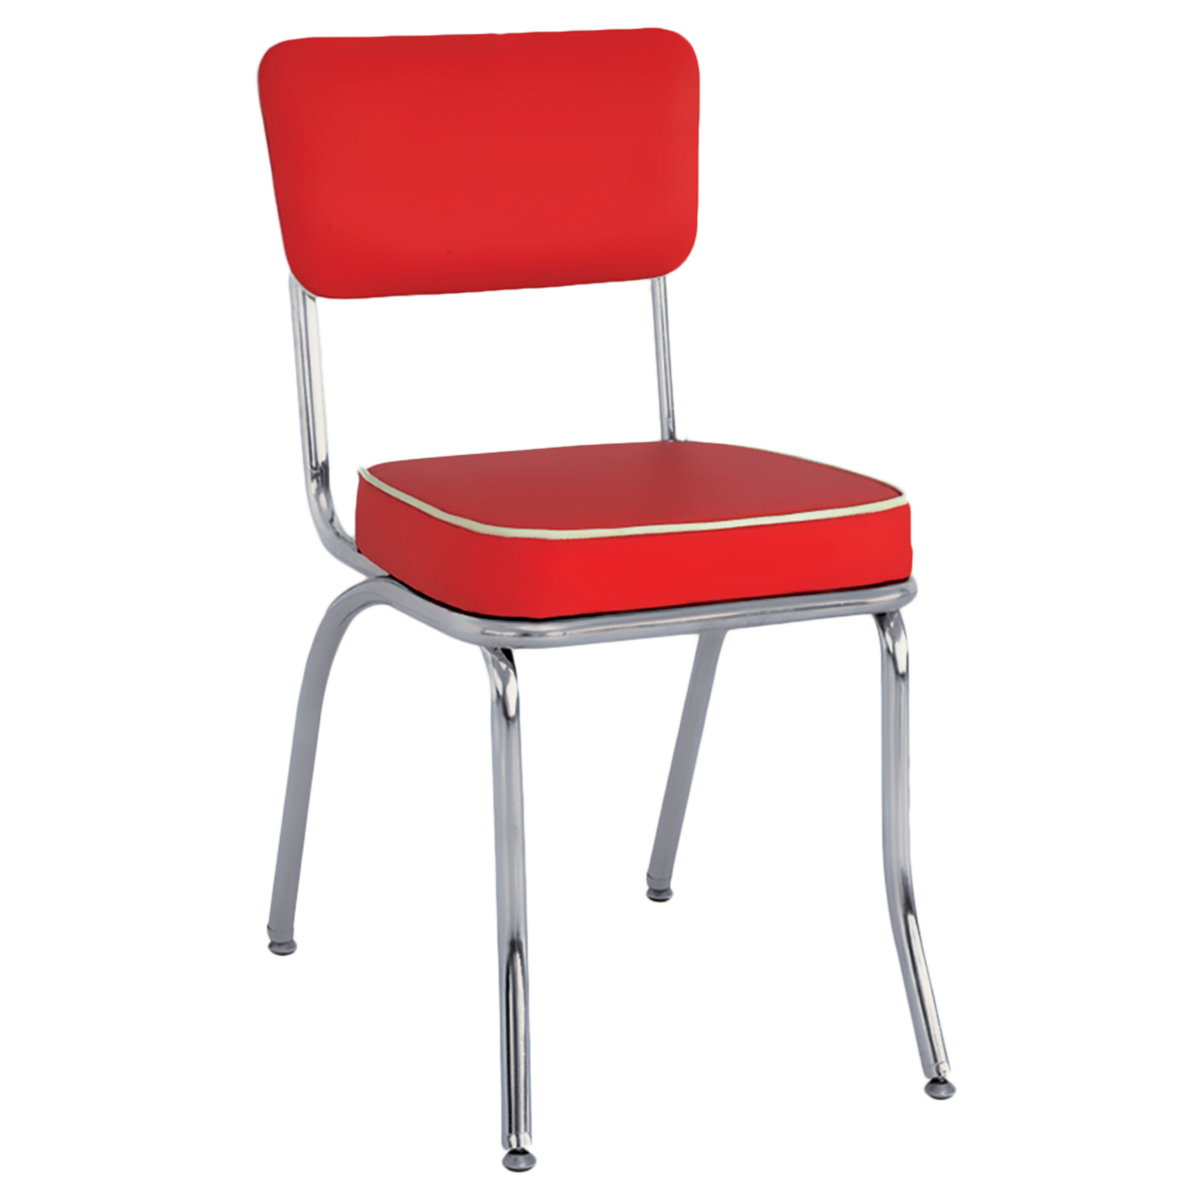 Superieur Metal Retro Upholstered Chrome Chairs